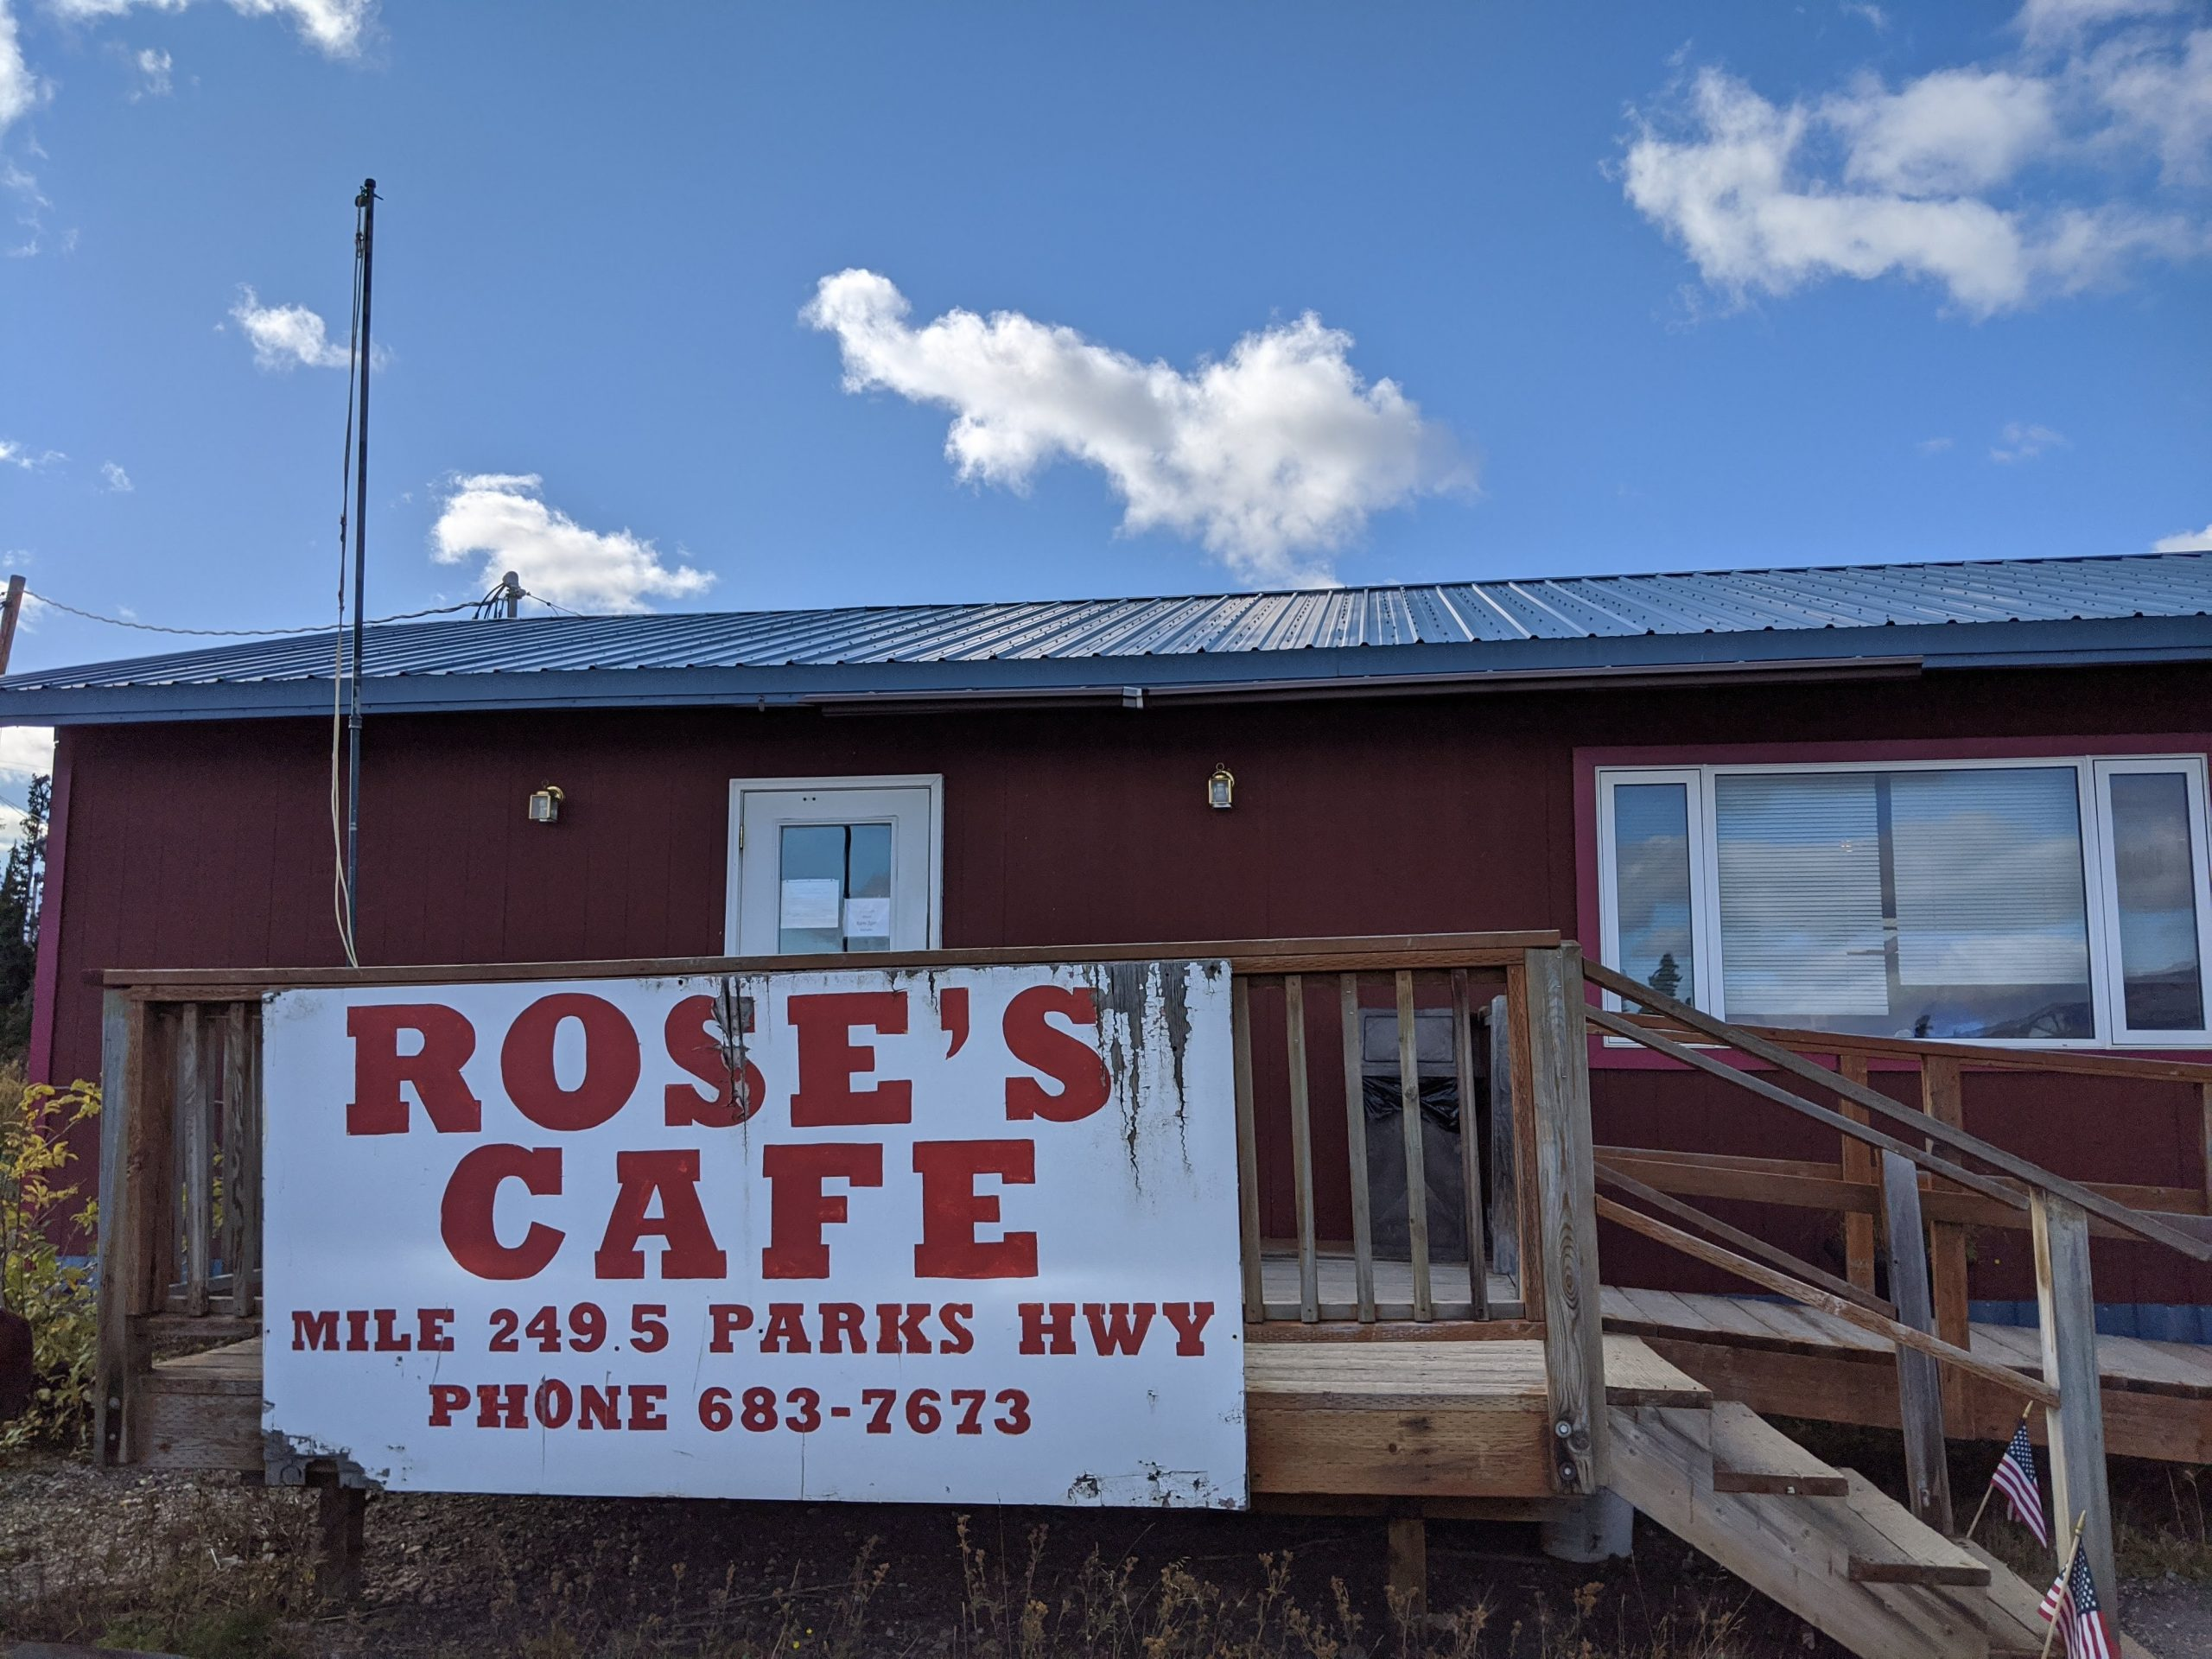 Rose's Cafe in Healy is a wonderful place to stop for food when visiting Denali National Park.